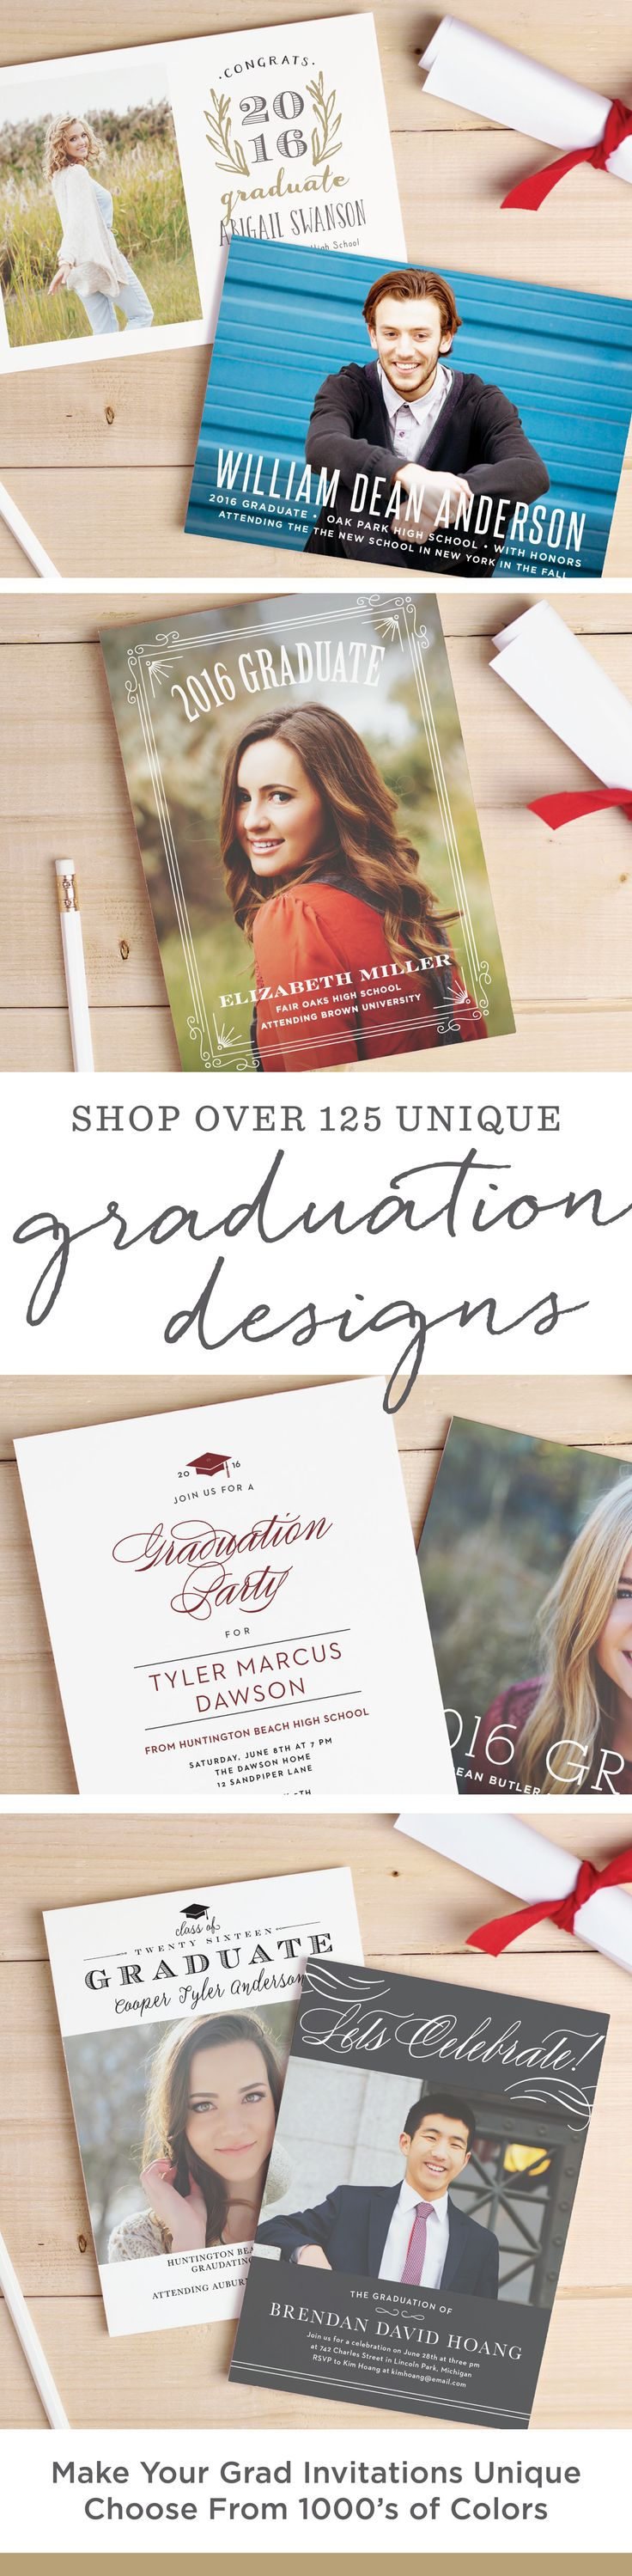 best graduation party images on pinterest graduation ideas